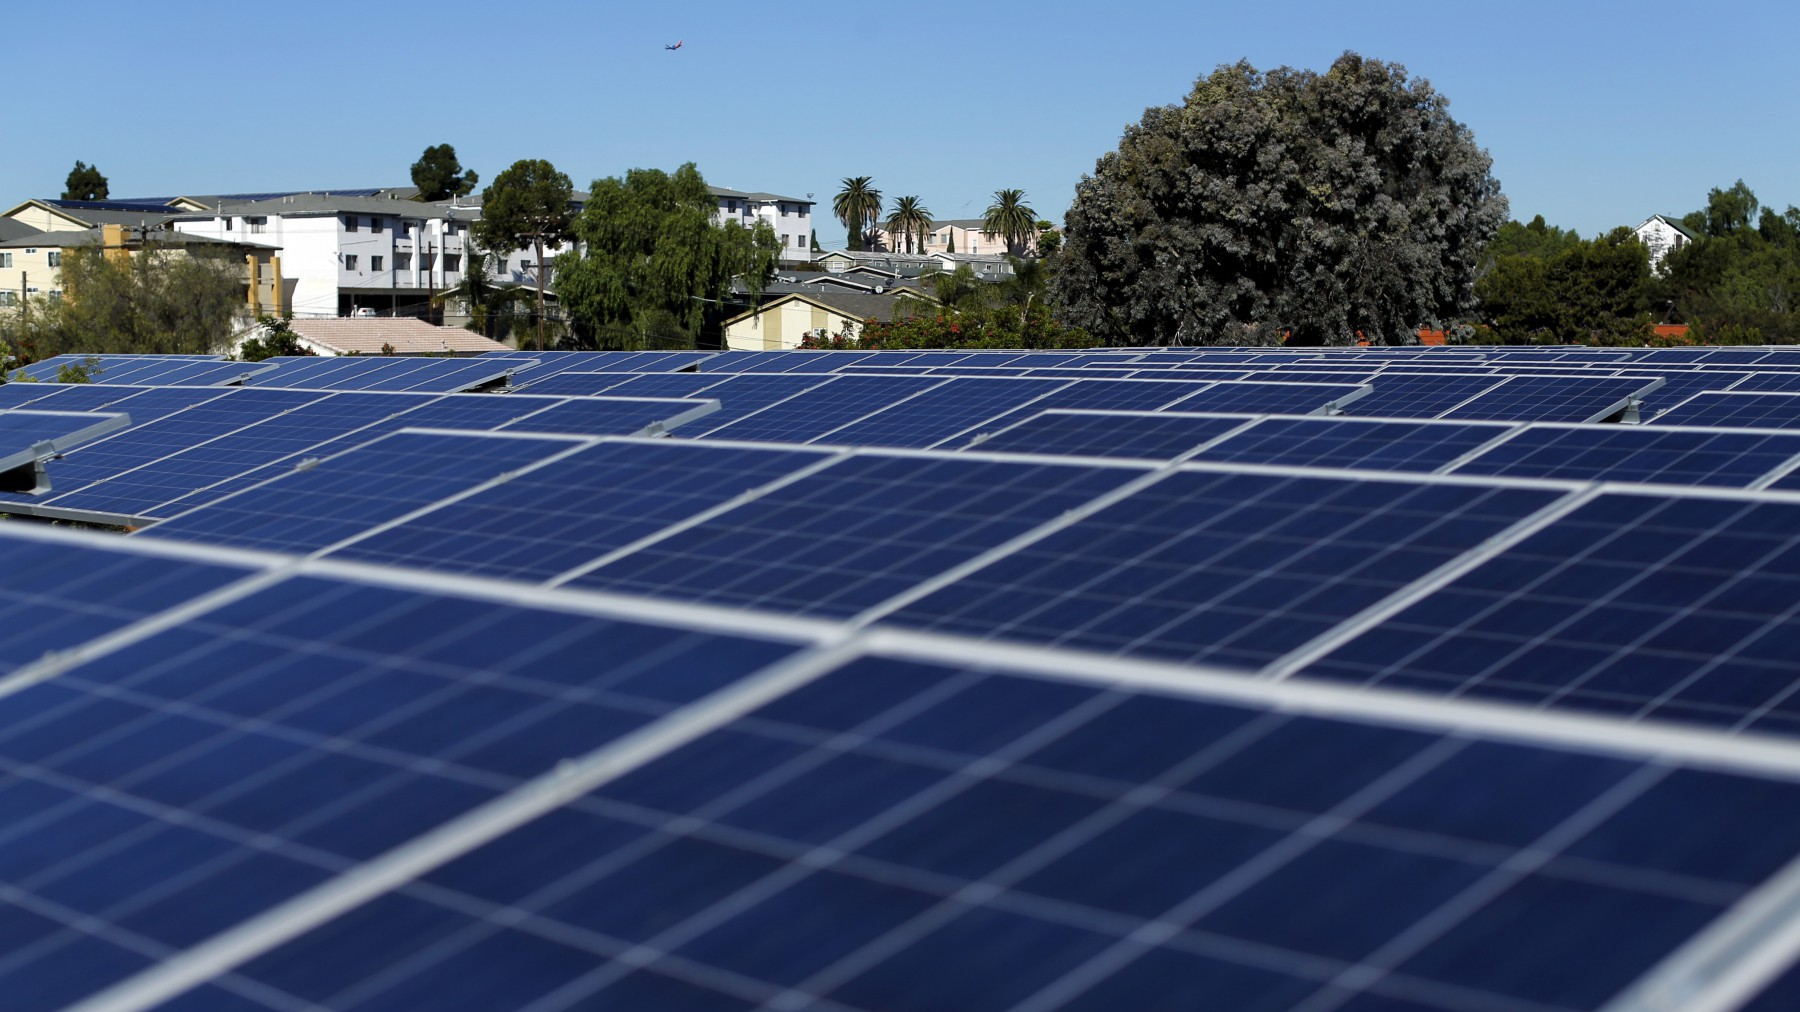 Solar panels are shown on top of a Multifamily Affordable Solar Housing-funded (MASH) housing complex in National City, California..